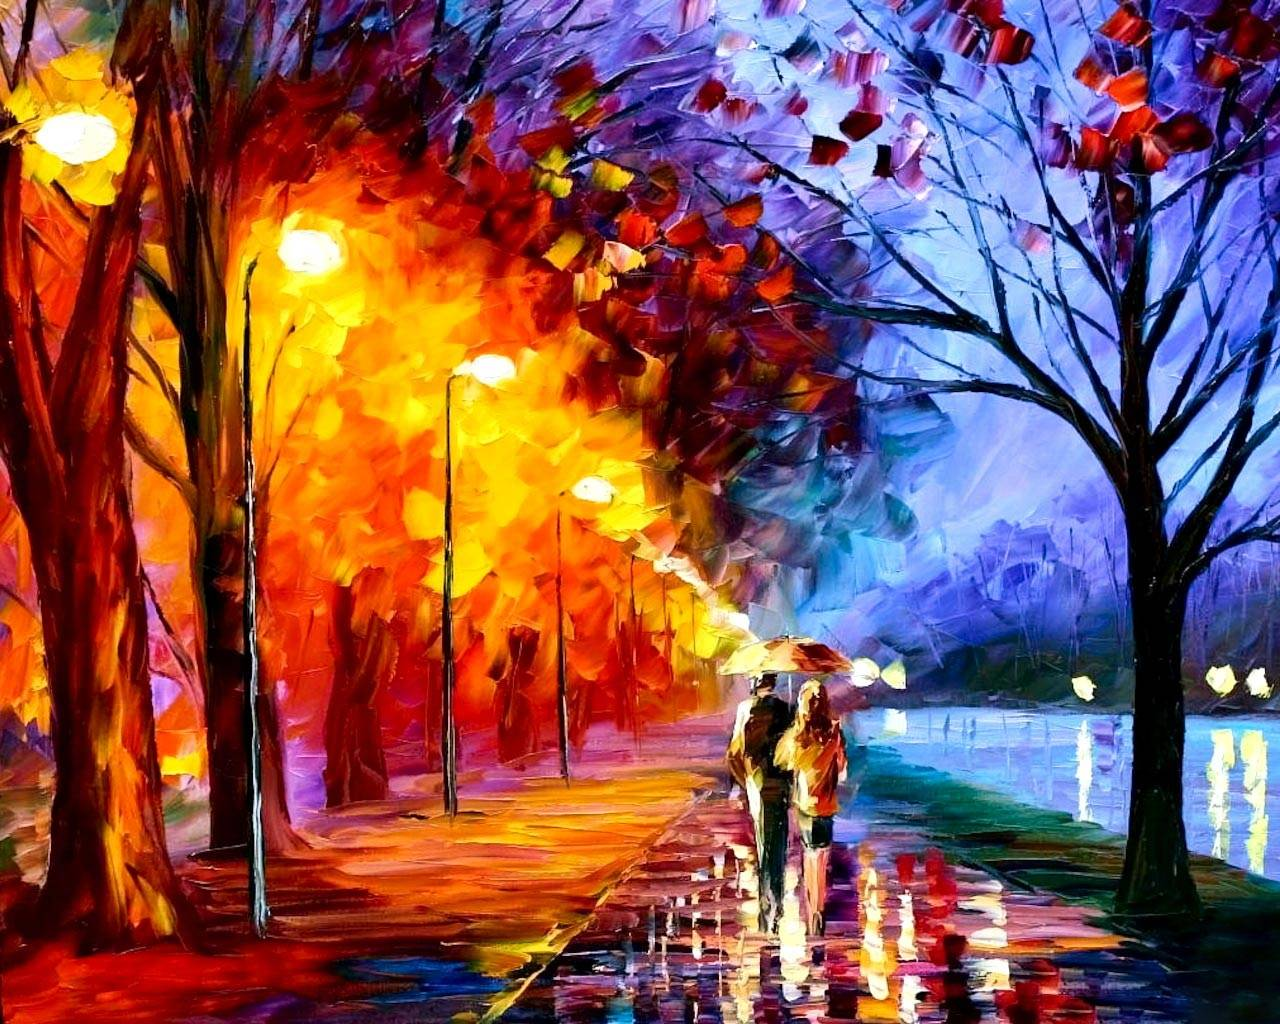 Awesome Painting Wallpaper: Outstanding Related Pictures Autumn Painting Wallpaper 1280x1024px